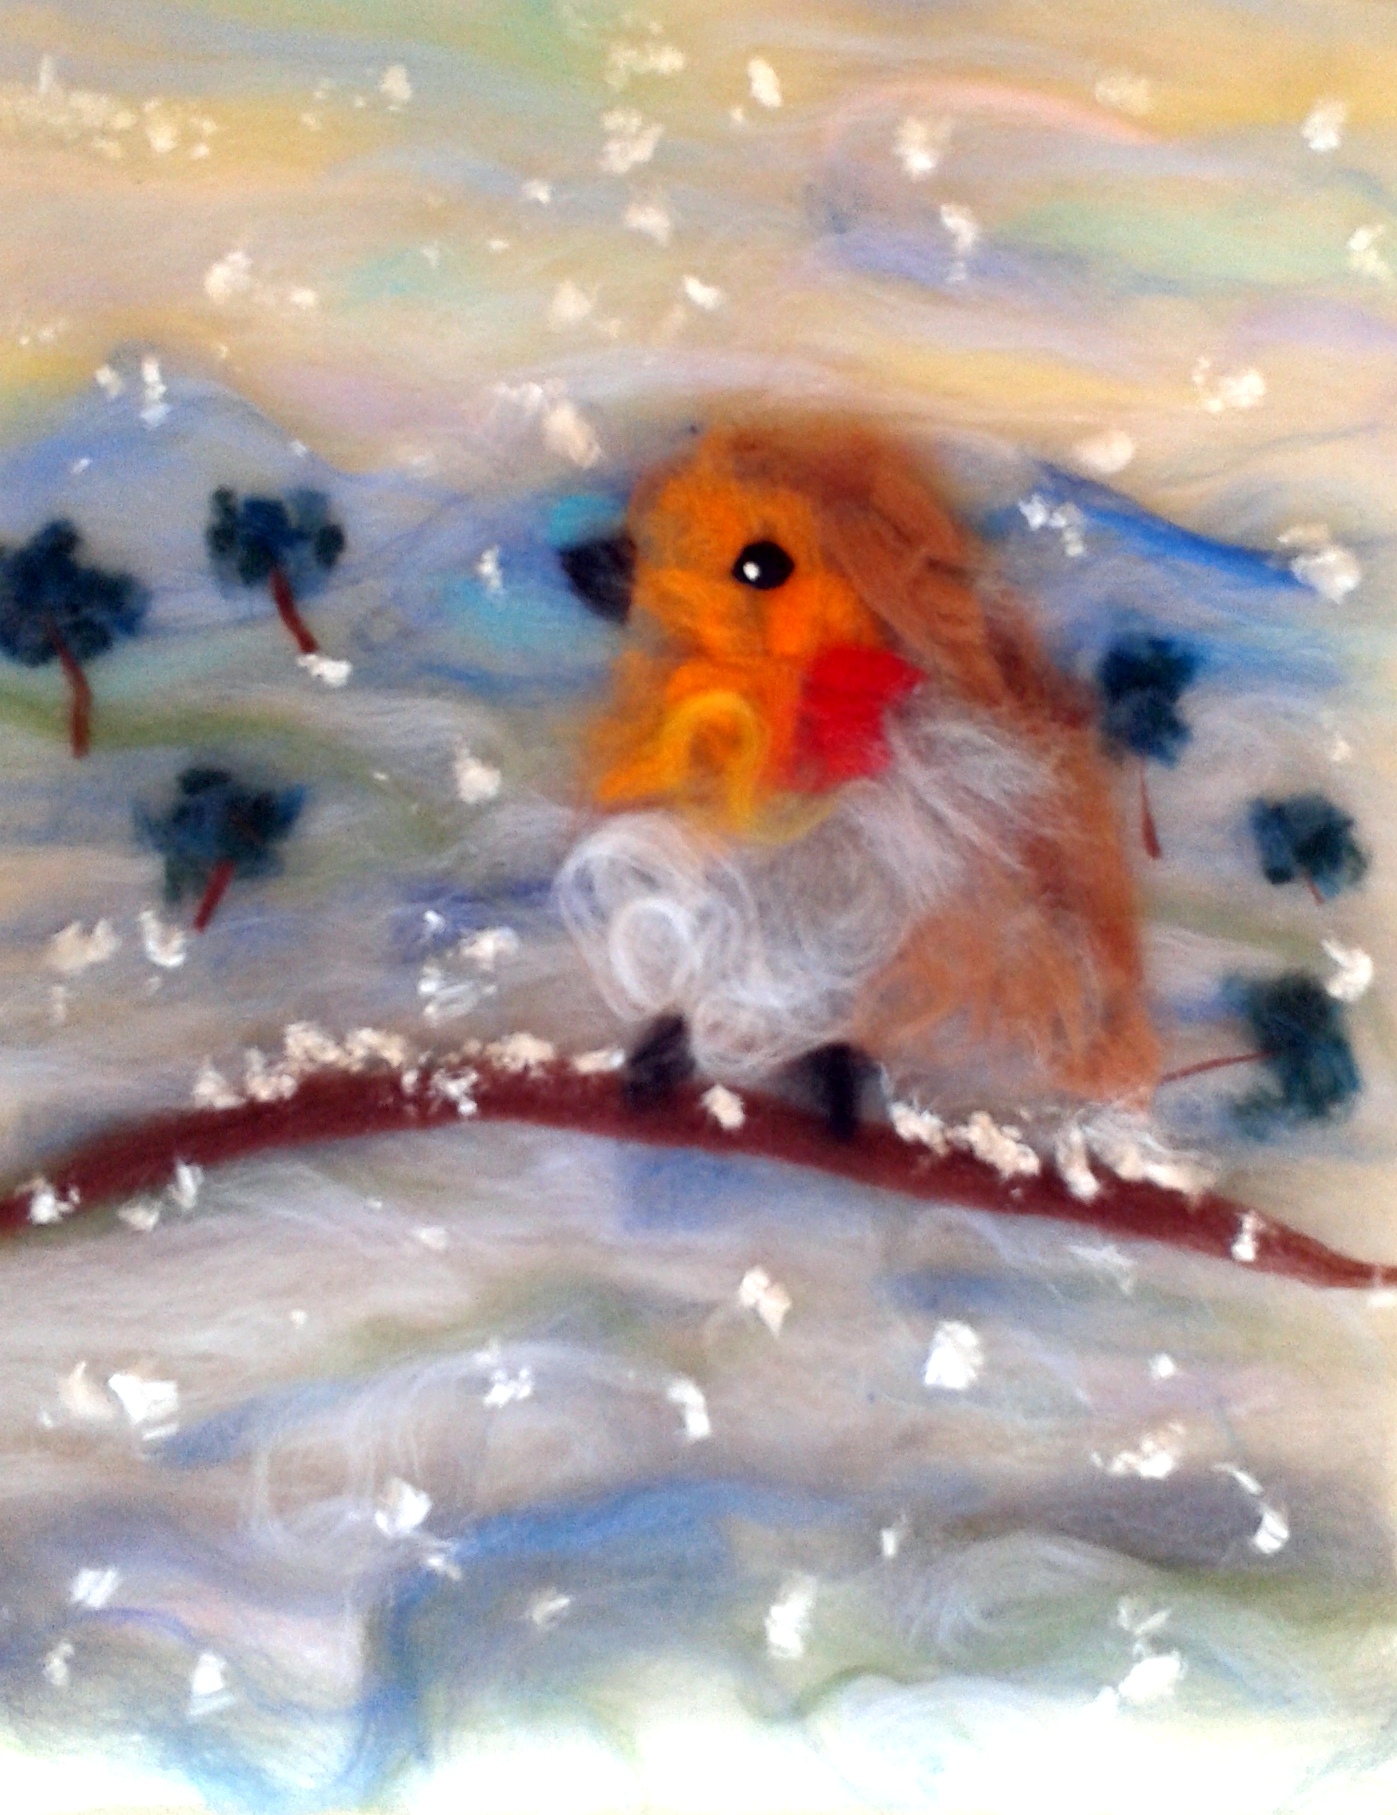 'Red Robin Landscape' wool painting created by Eli at Magic Wool Studio with artist Raya Brown